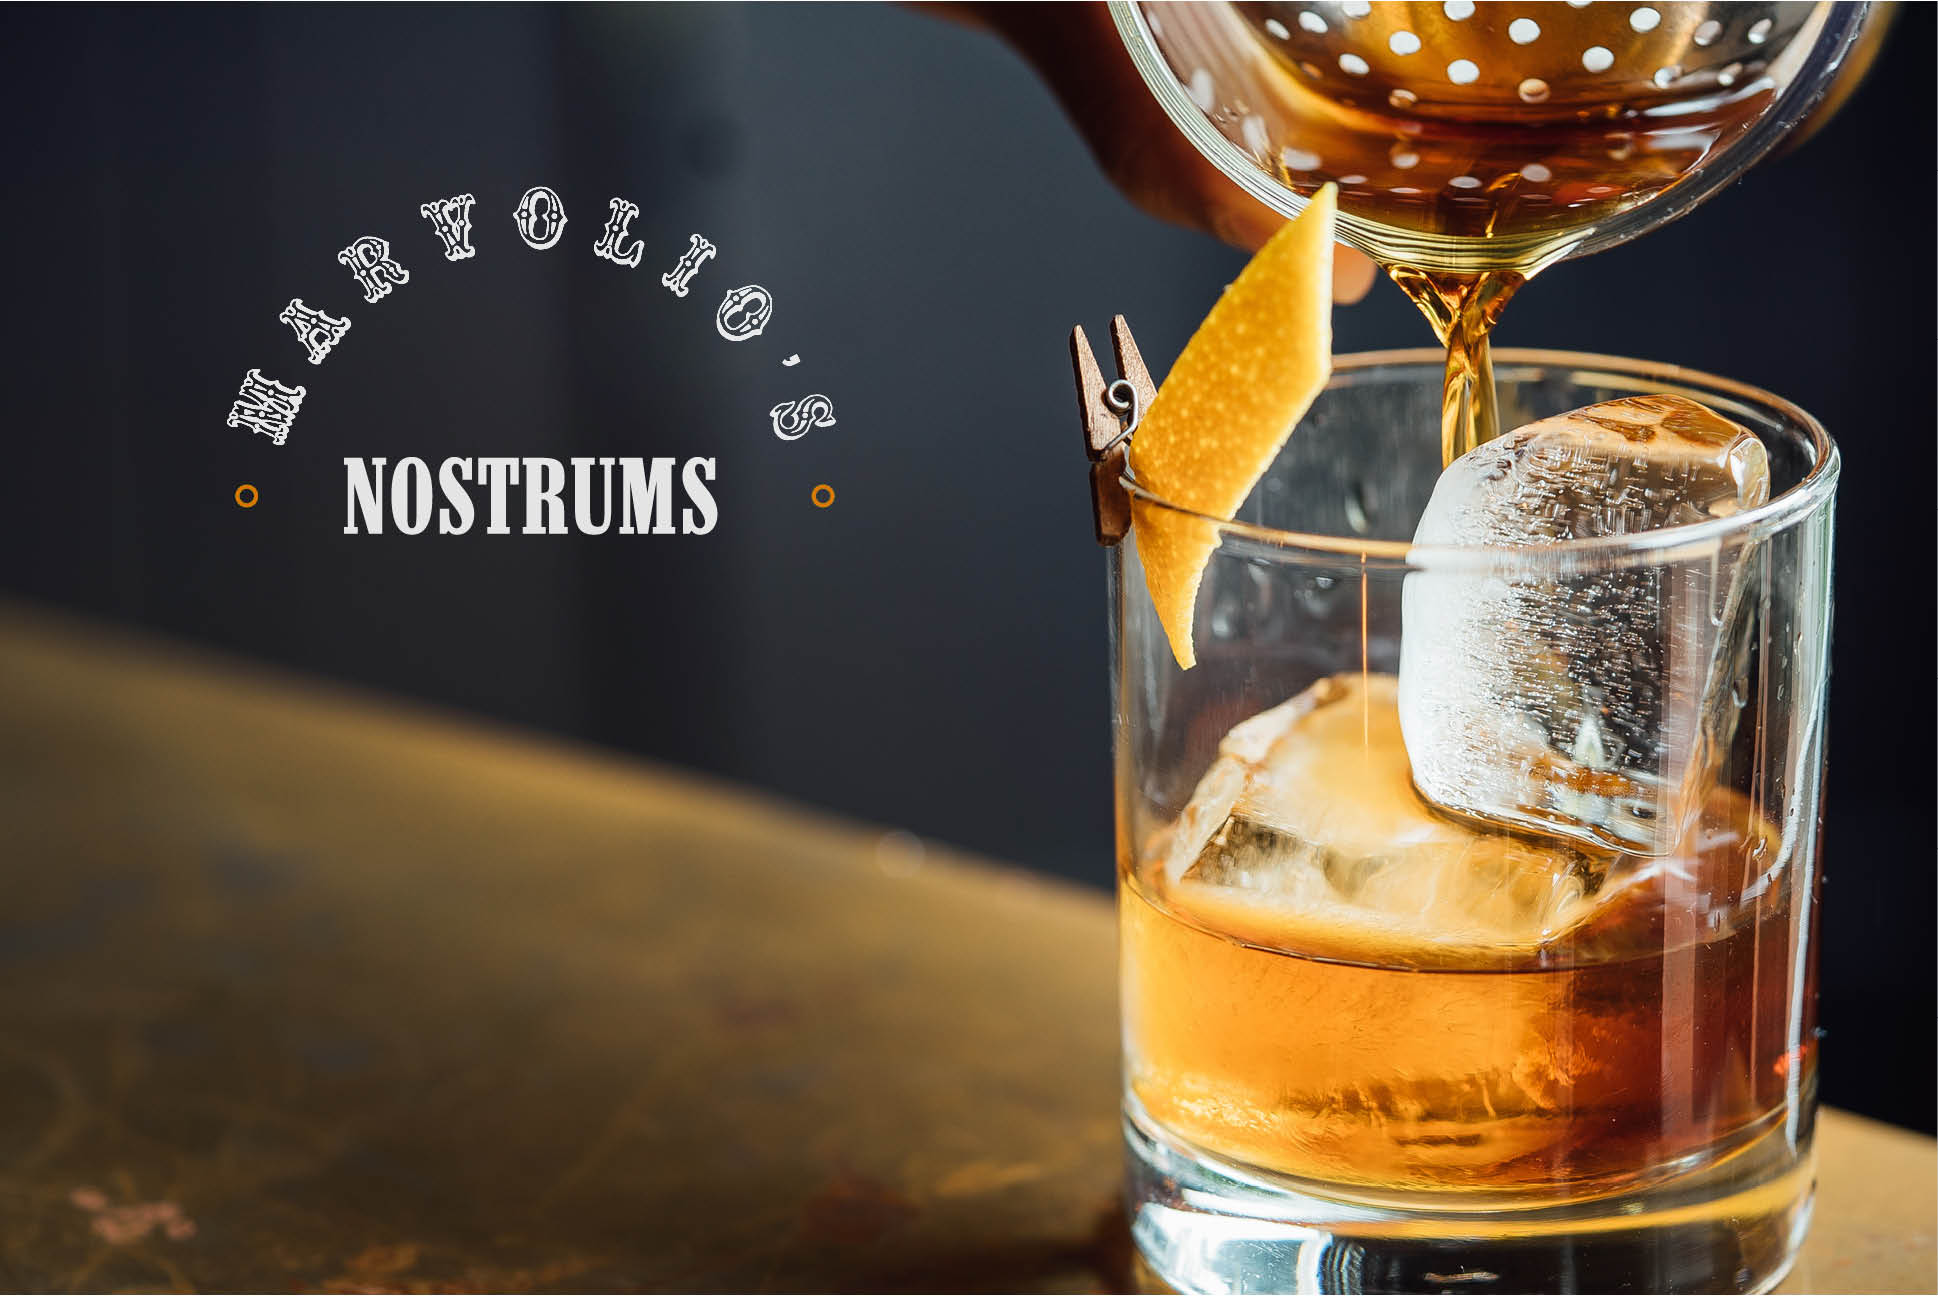 Marvolio's Nostrums branding | Marvolio's Nostrums | Independent Marketing Packaging, Design and Website Design Services | IM London